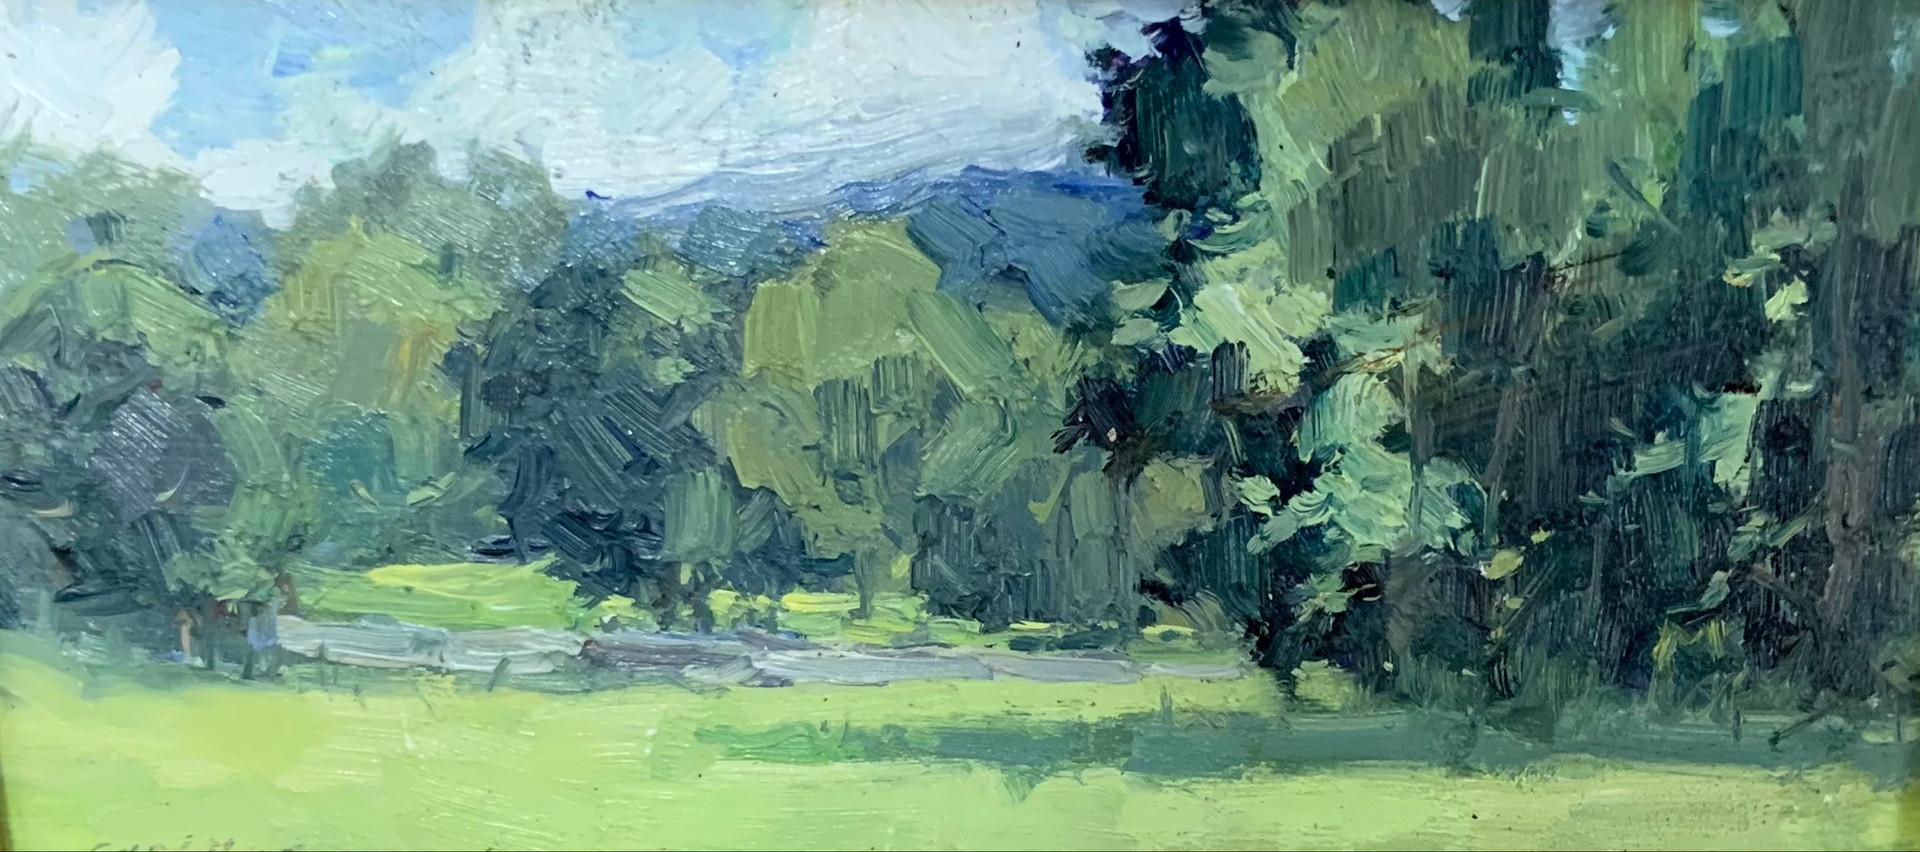 Hill and Dale, Elise Phillips, oil 4x8